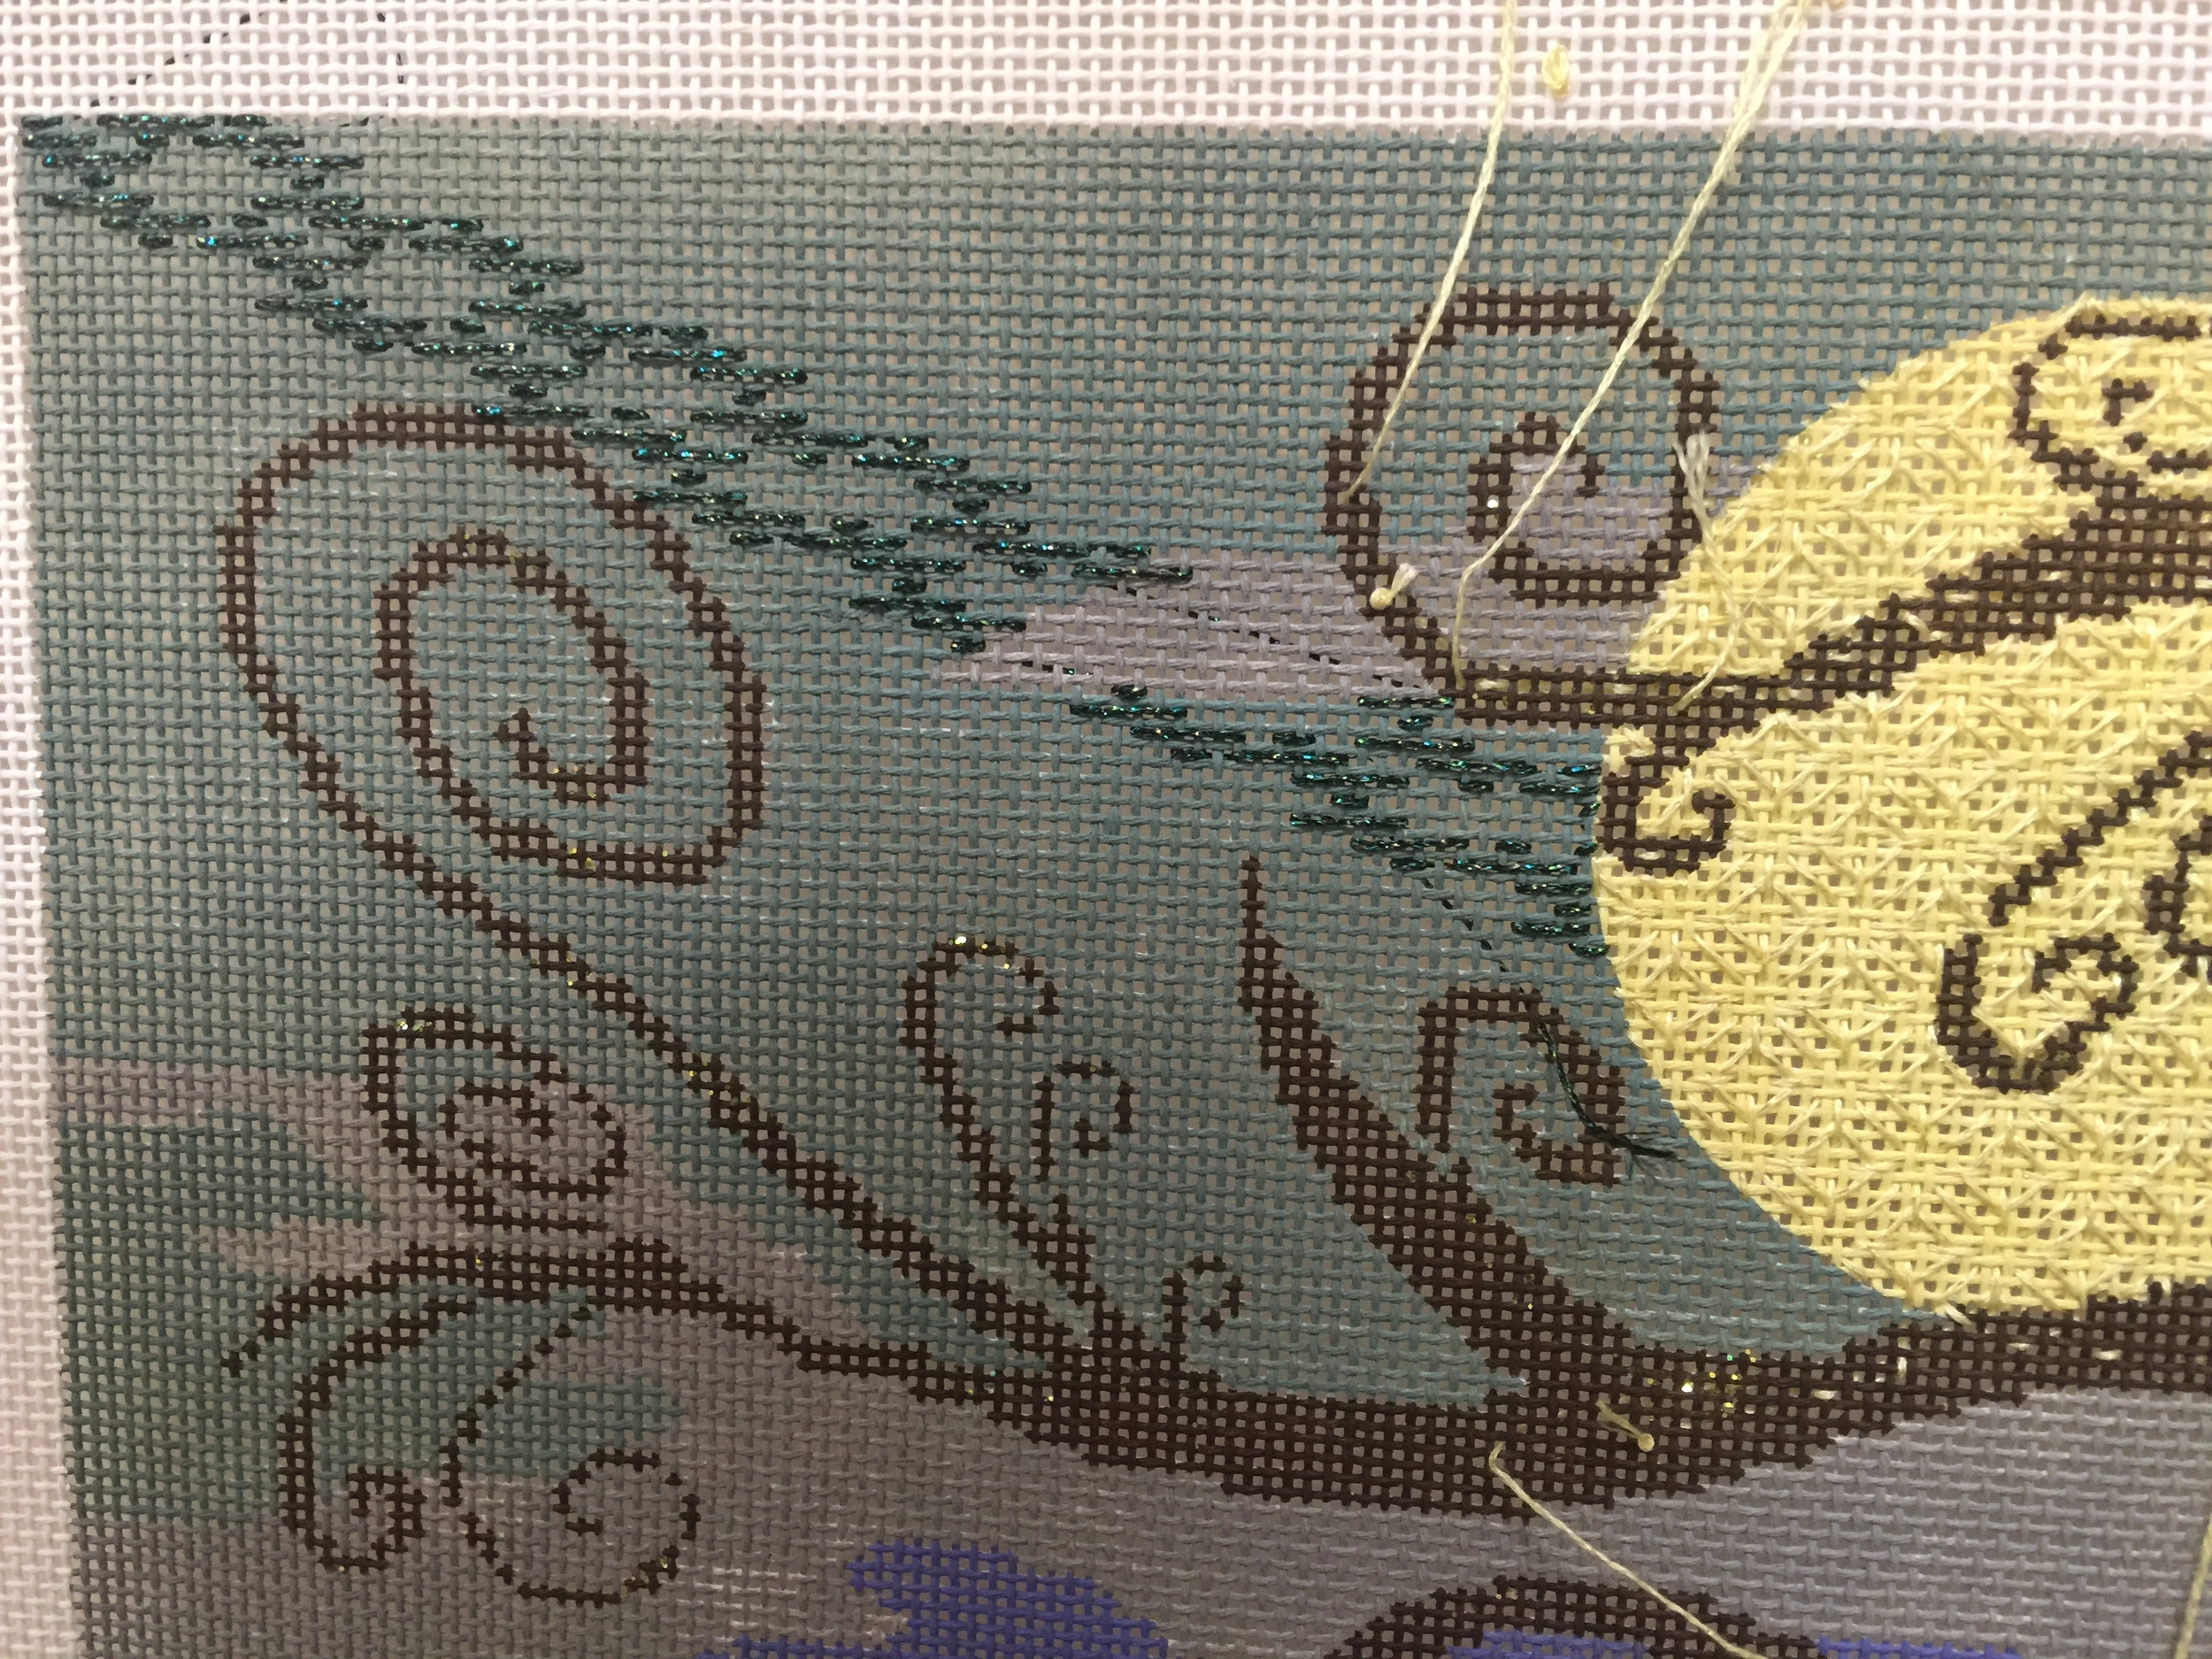 A new stitch for the Sky and 5-step Blackwork pattern for the Moon.